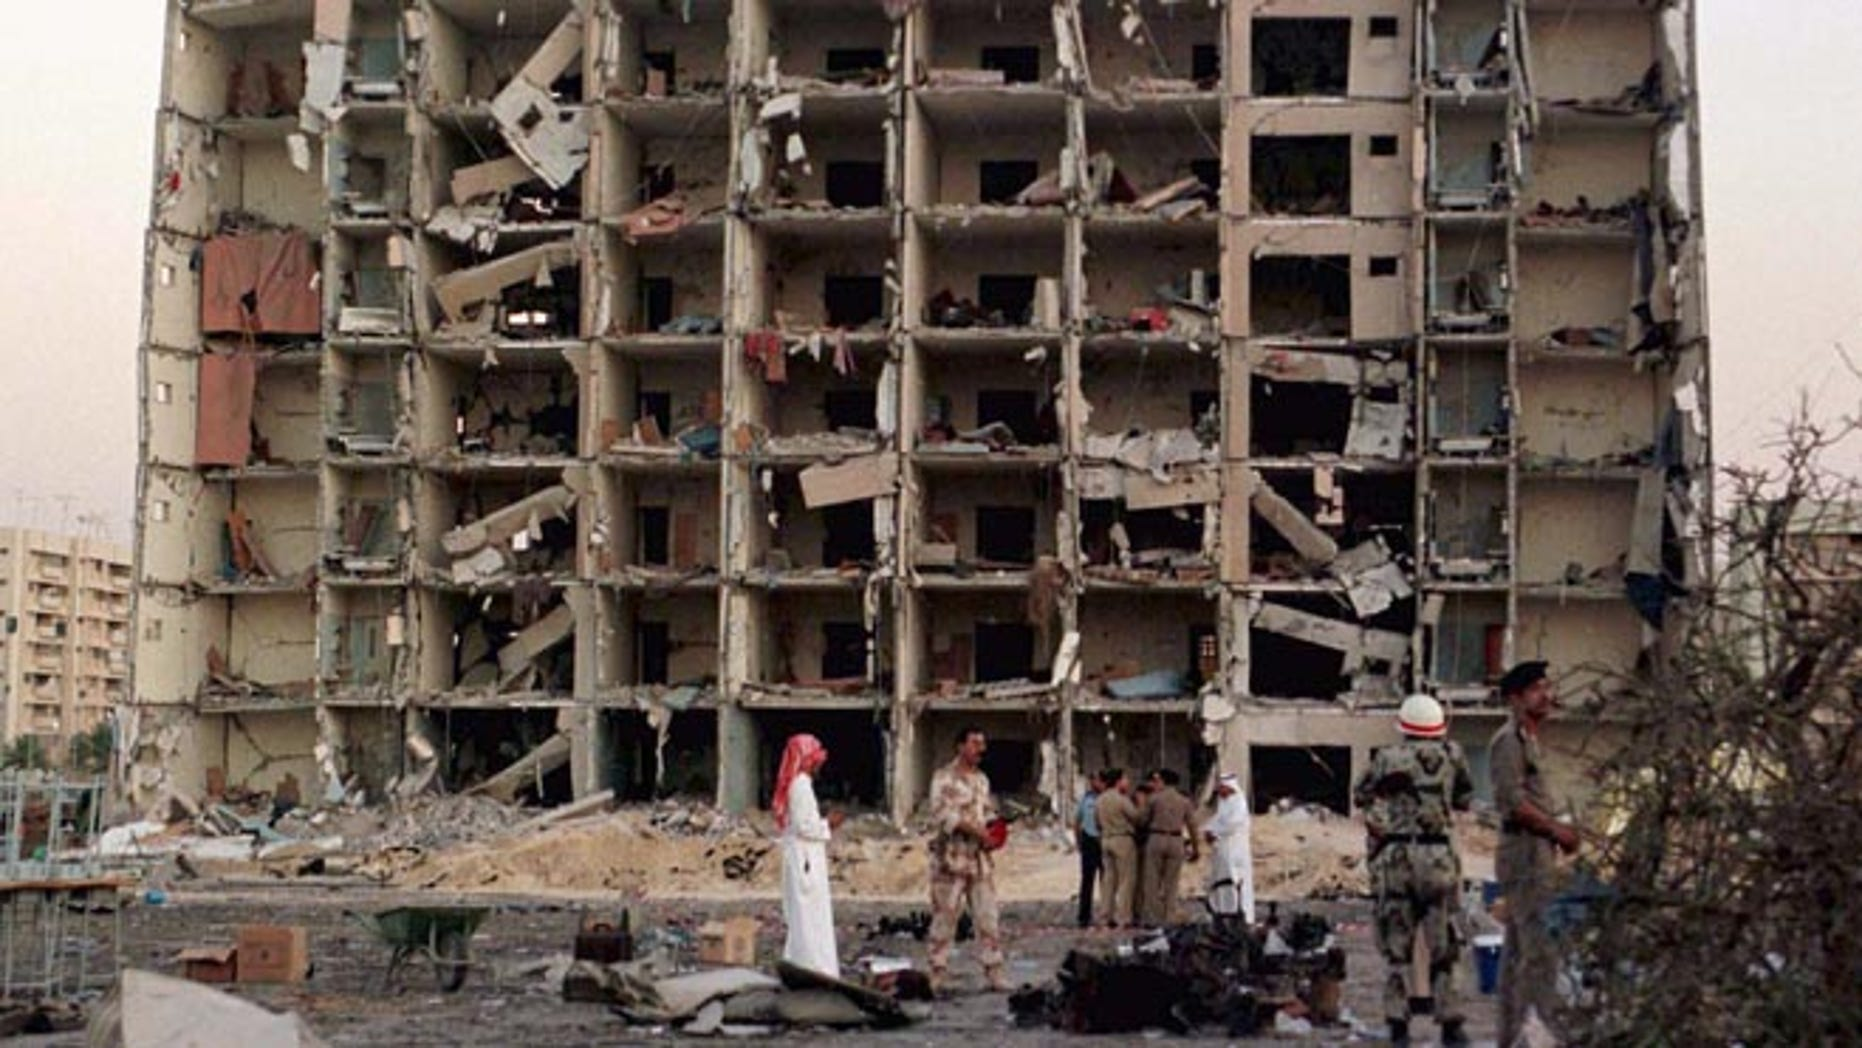 JUNE 1996: U.S. and Saudi investigators work into the night searching for clues outside the apartment building destroyed by a bomb at the Khobar Towers housing complex for U.S. military personnel in Dhahran.